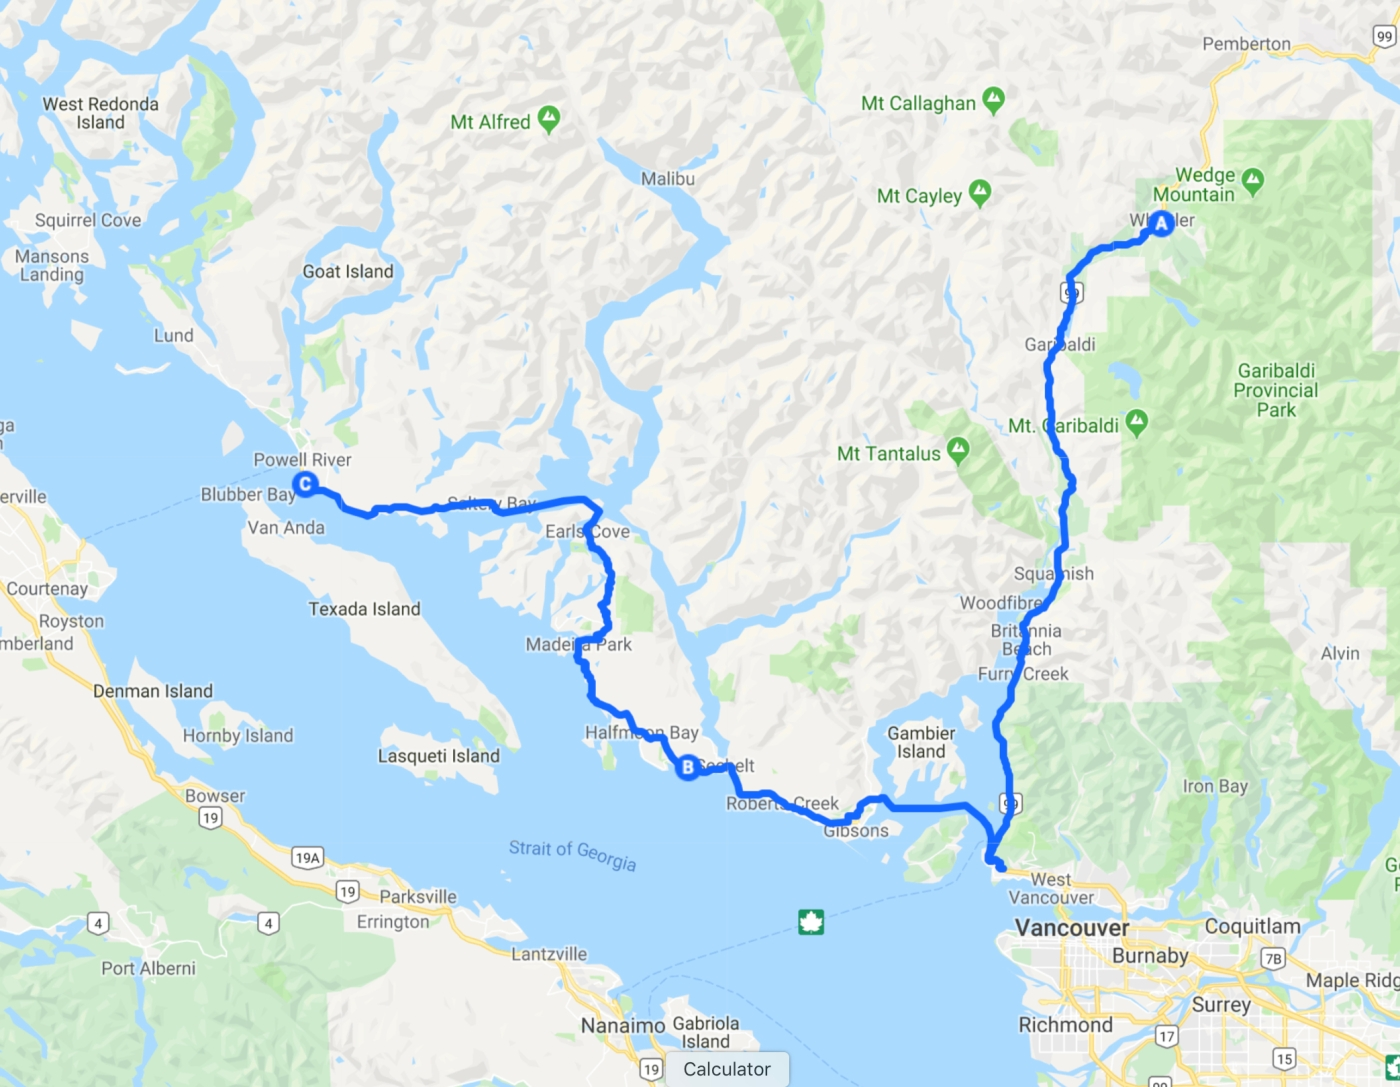 Whistler to Powell River